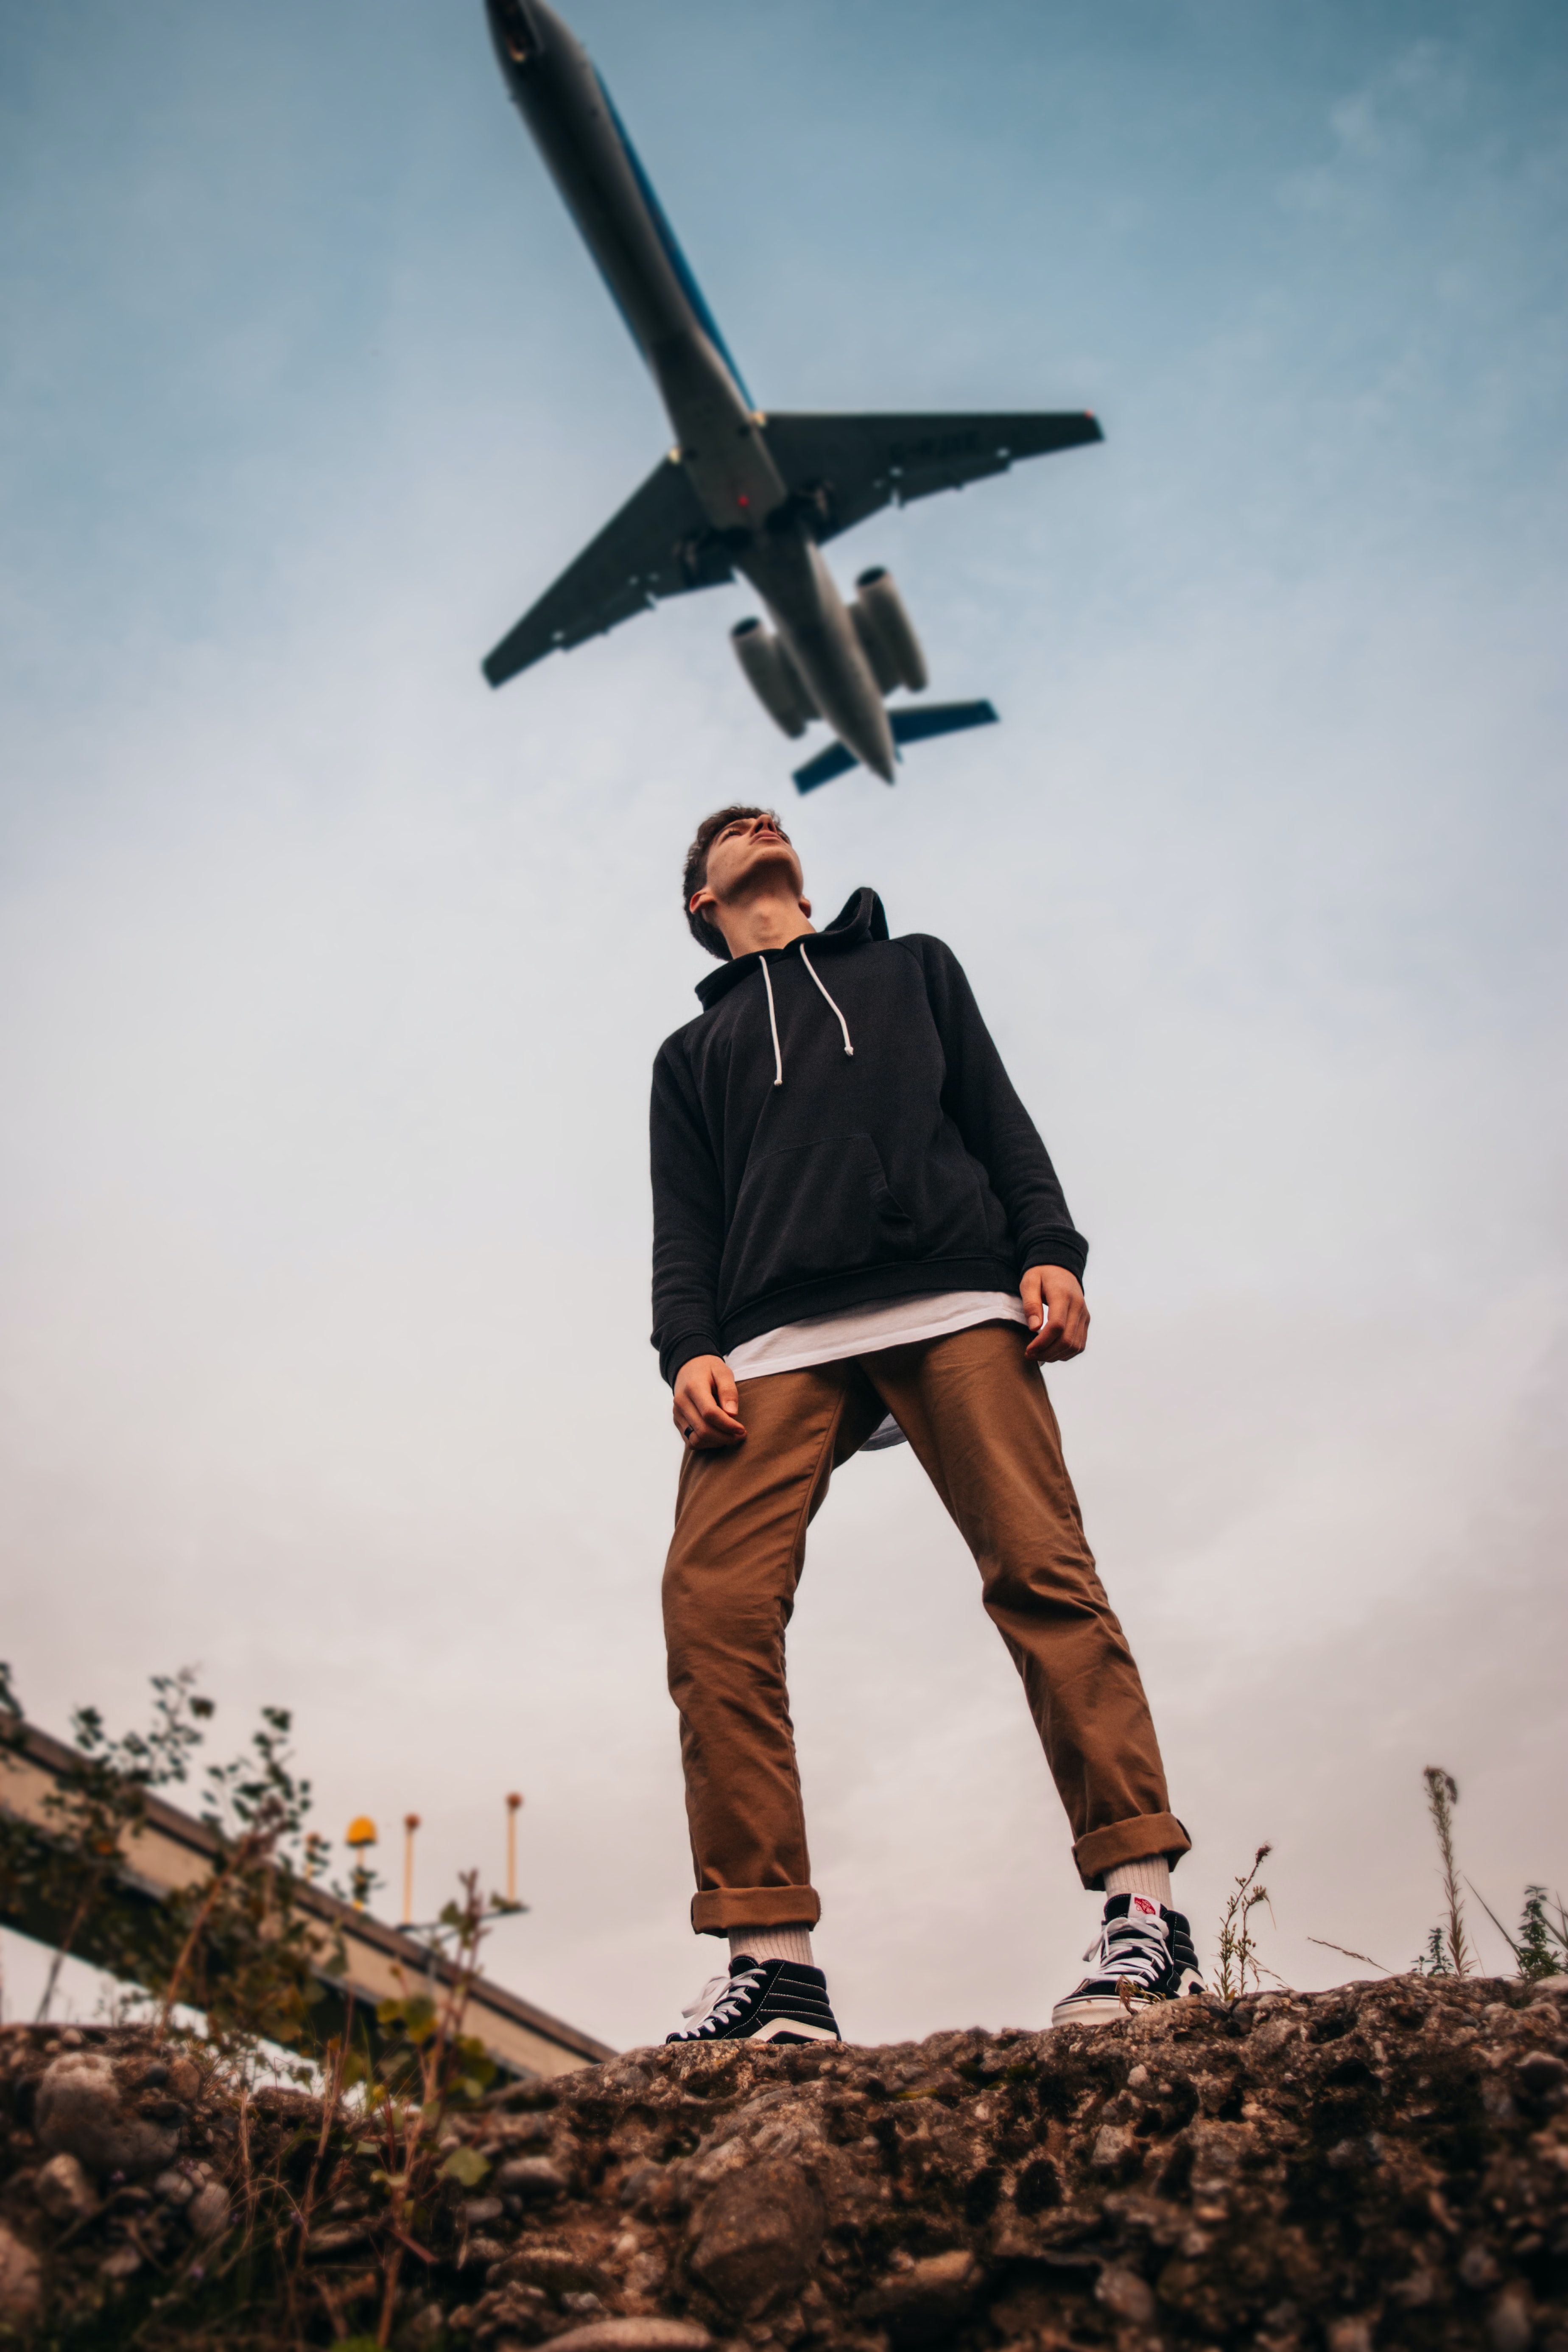 man looking up at flying airplane during daytime